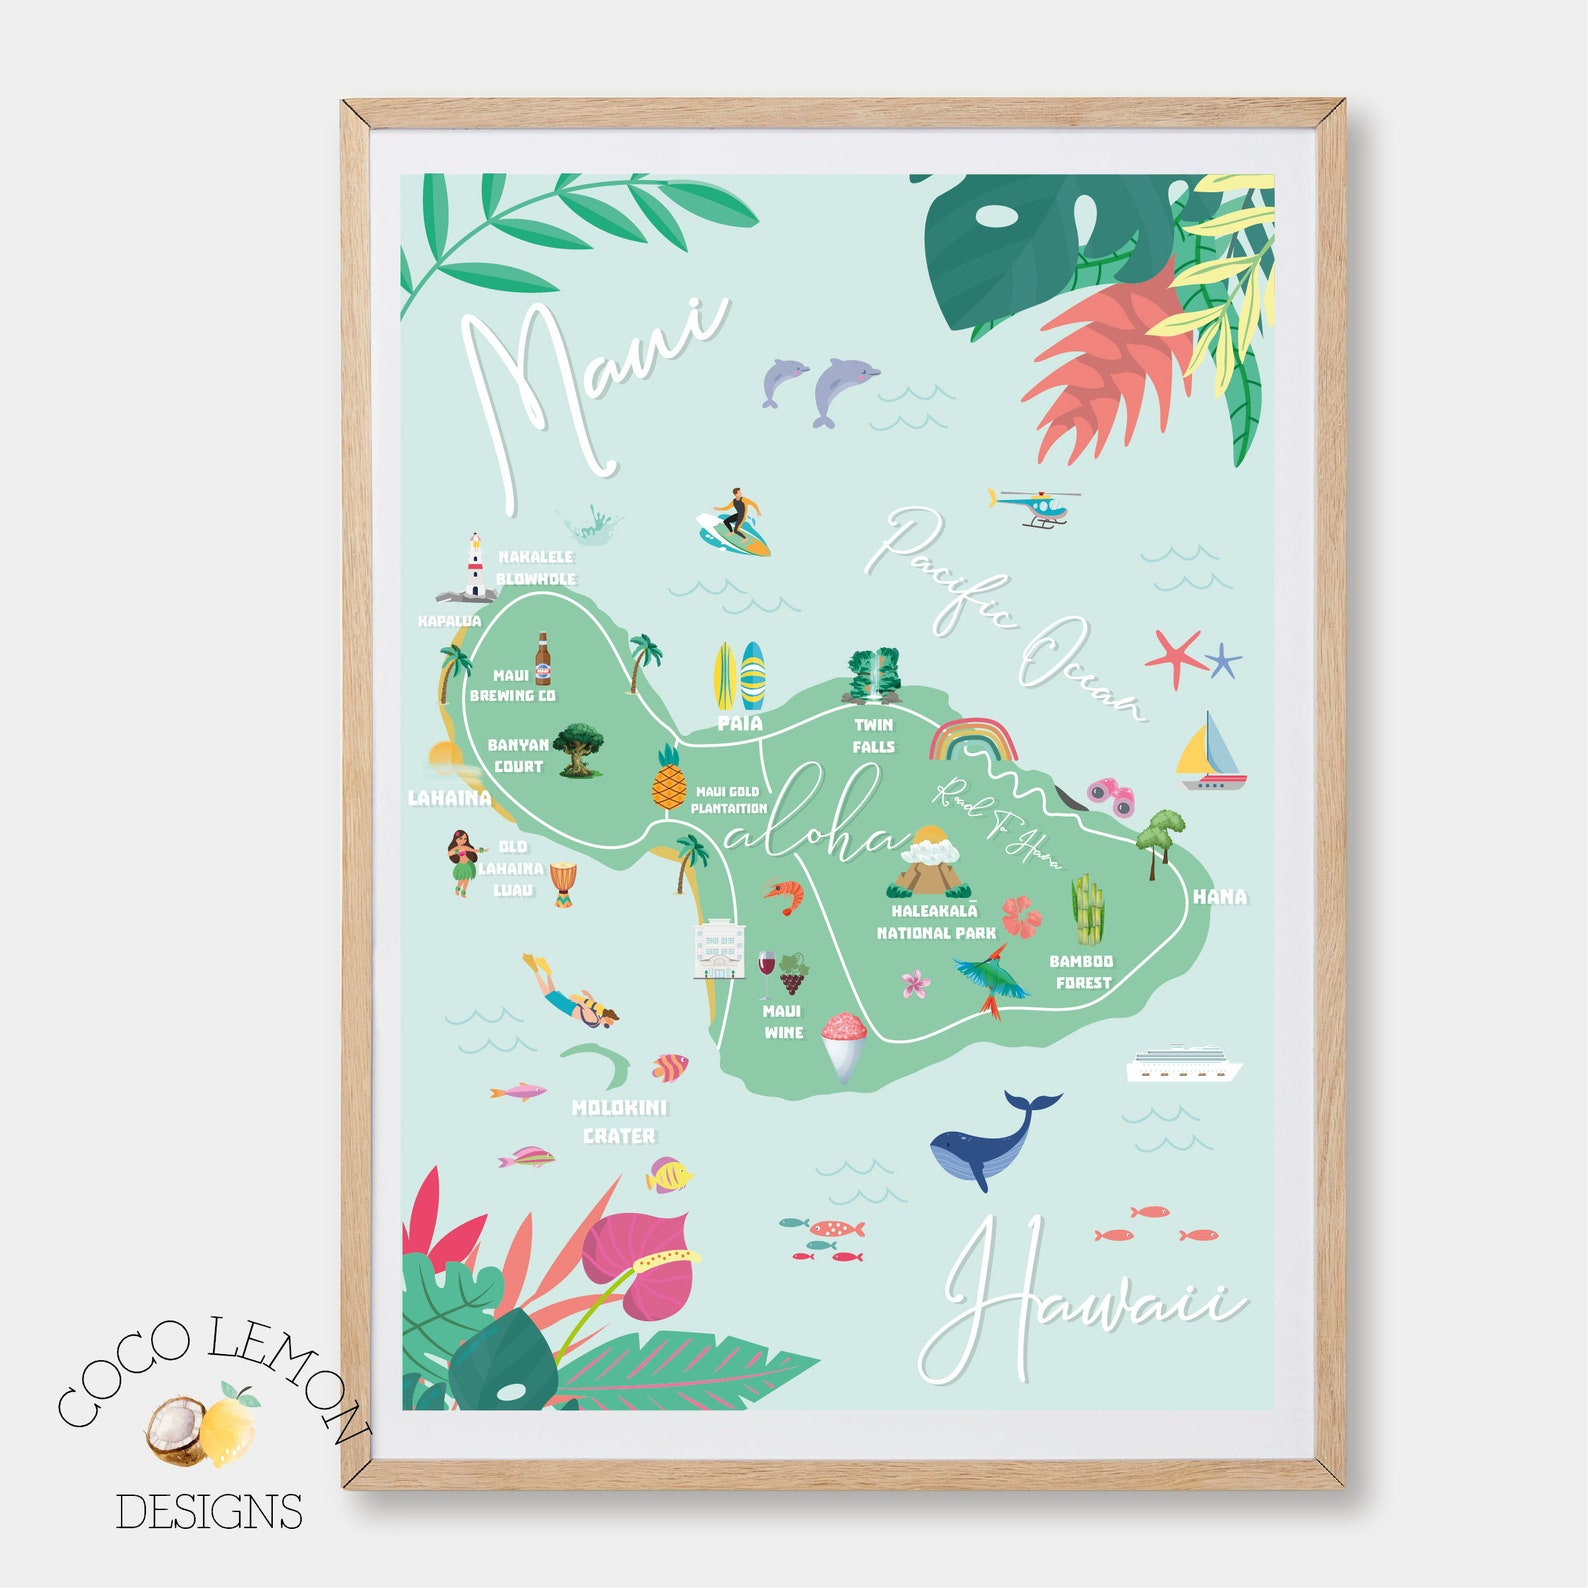 This map of Maui is one of the best gifts from Hawaii